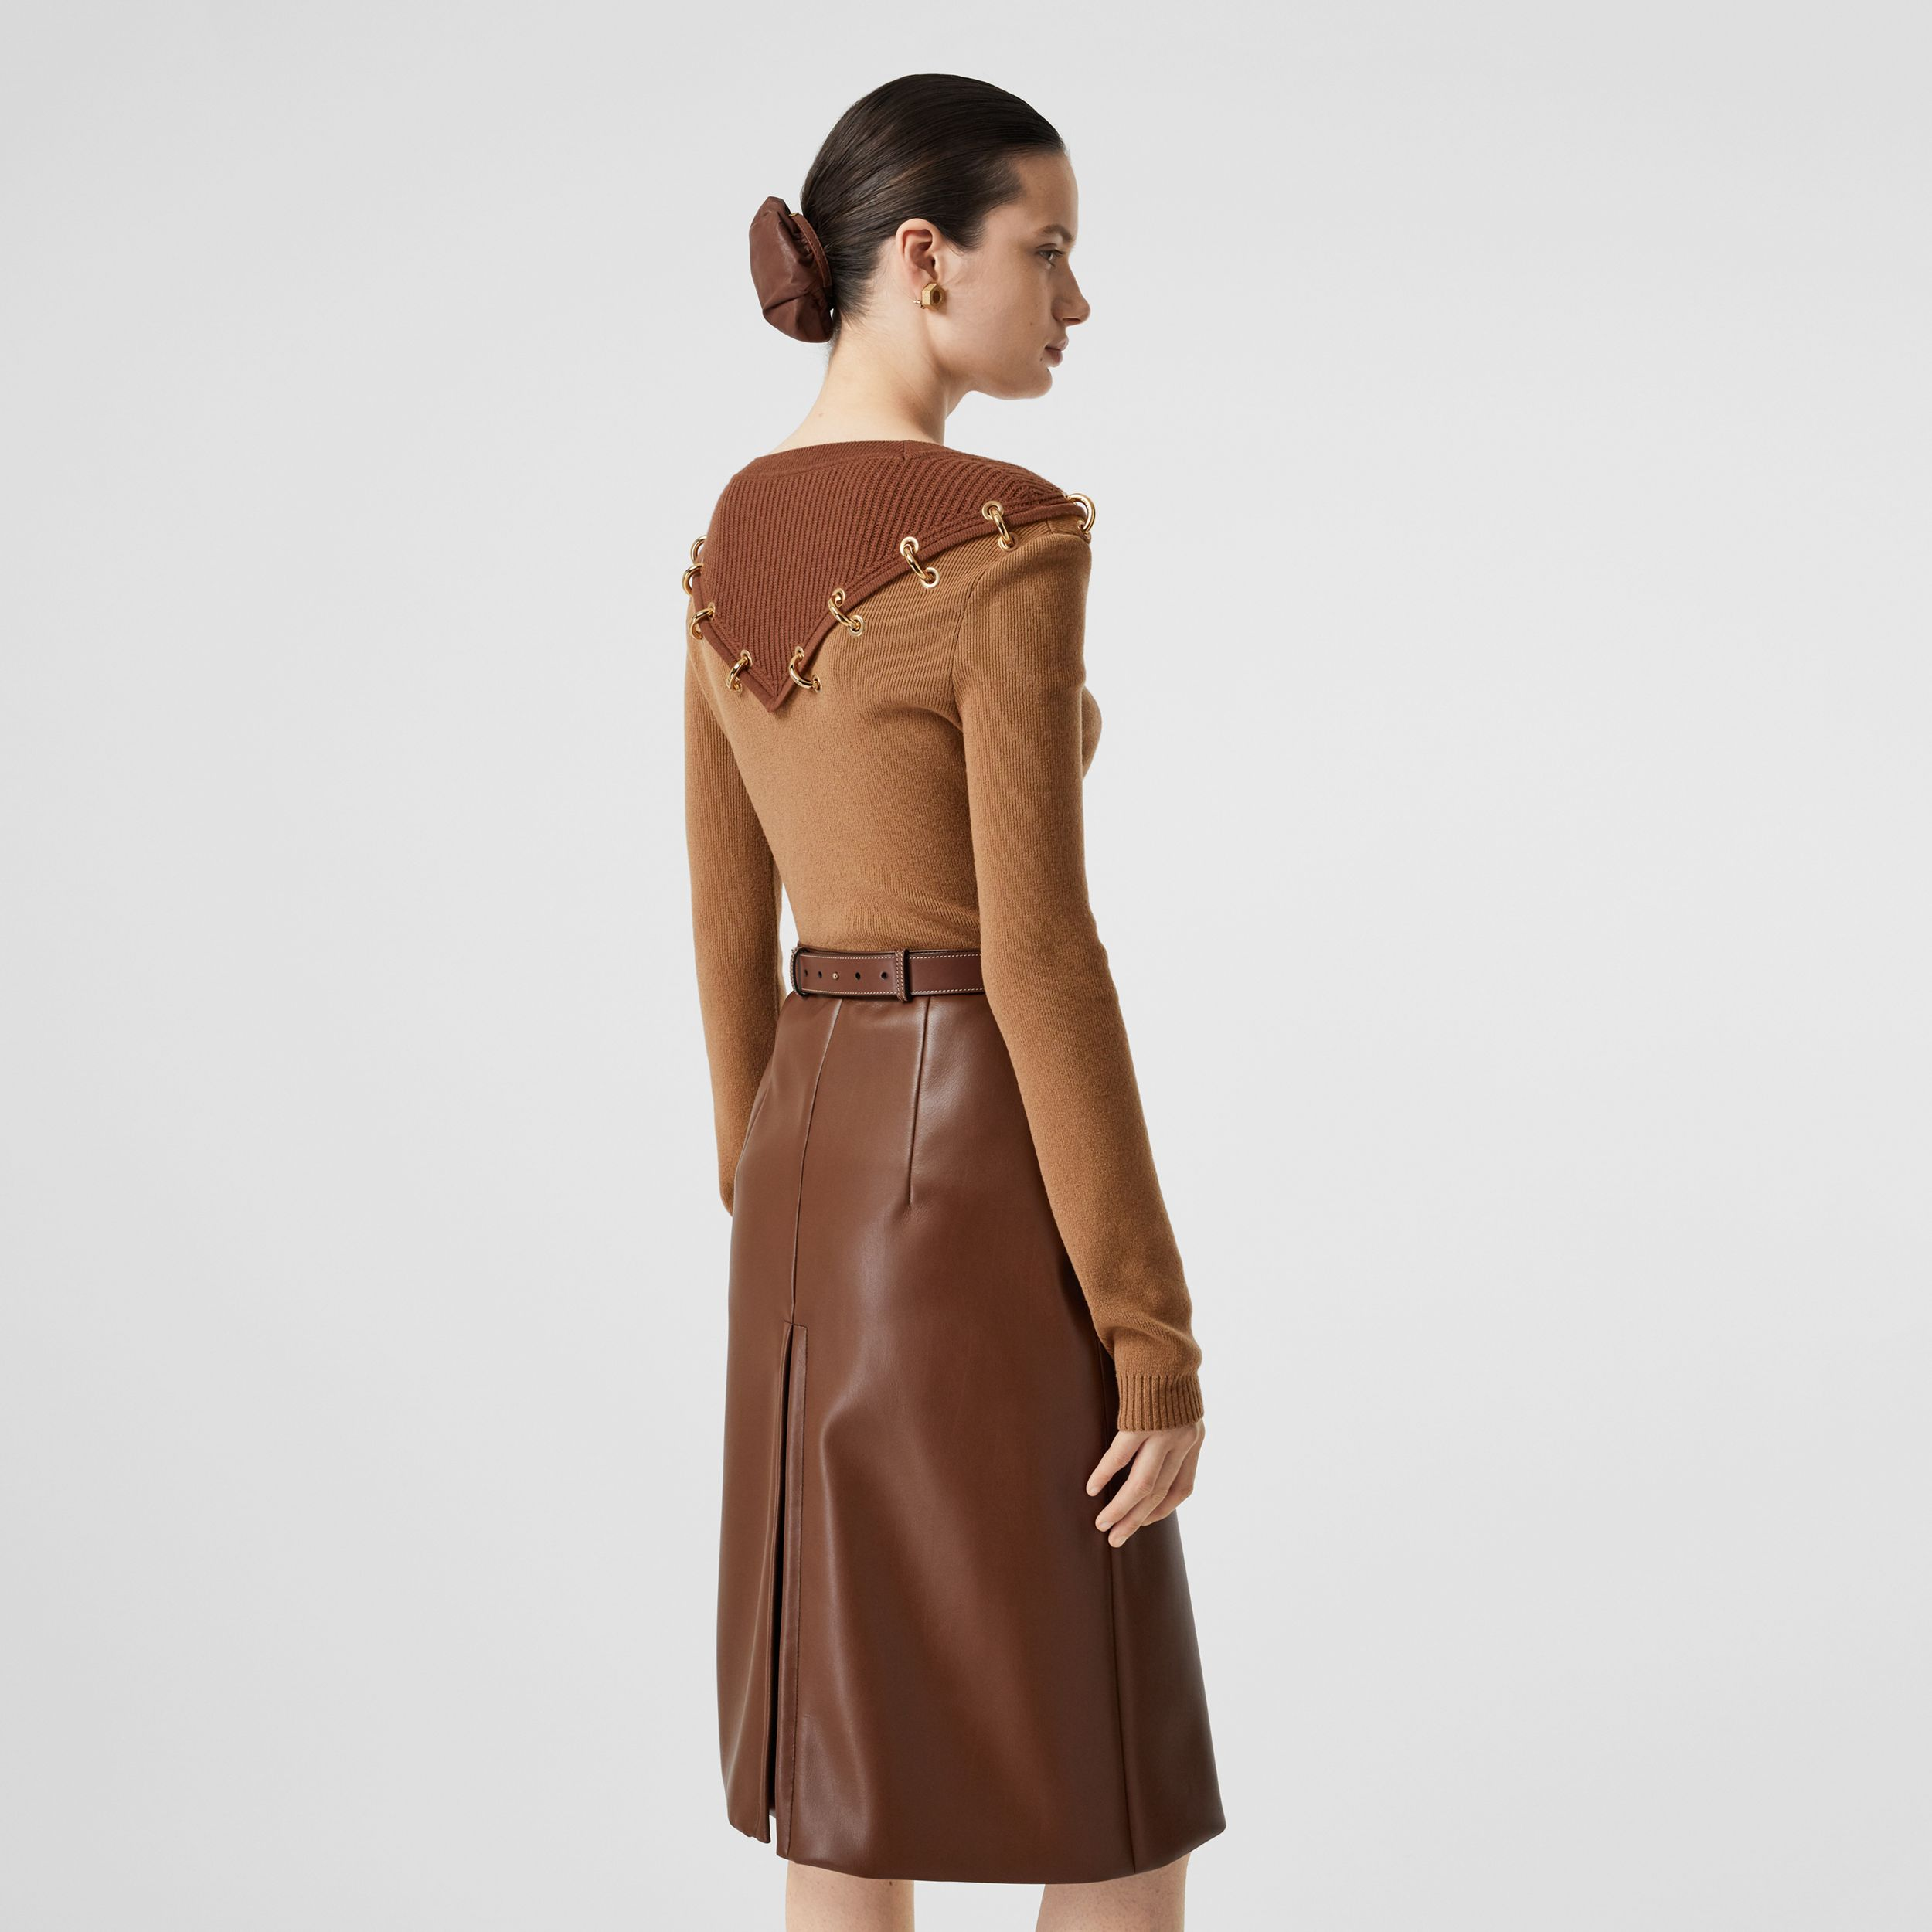 Ring-pierced Two-tone Wool Cashmere Sweater in Warm Camel - Women | Burberry - 3